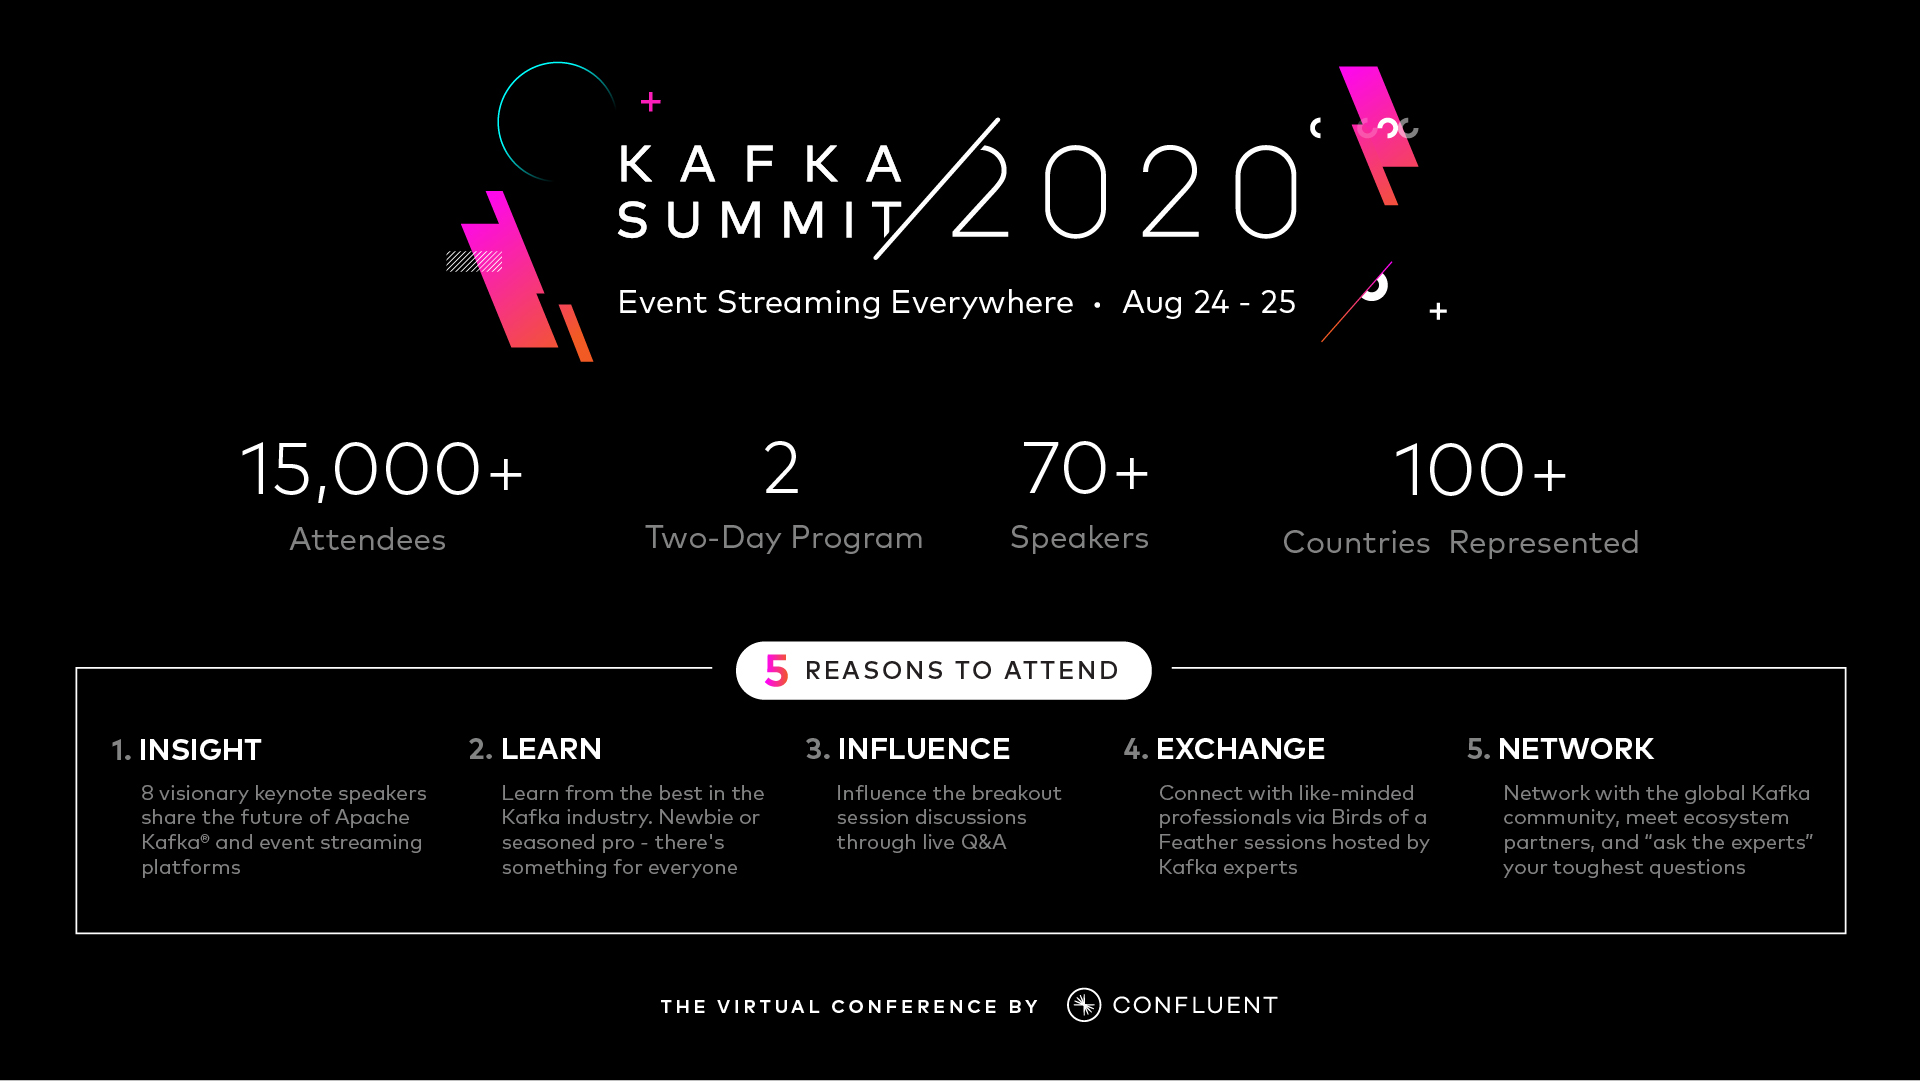 Kafka Summit 2020